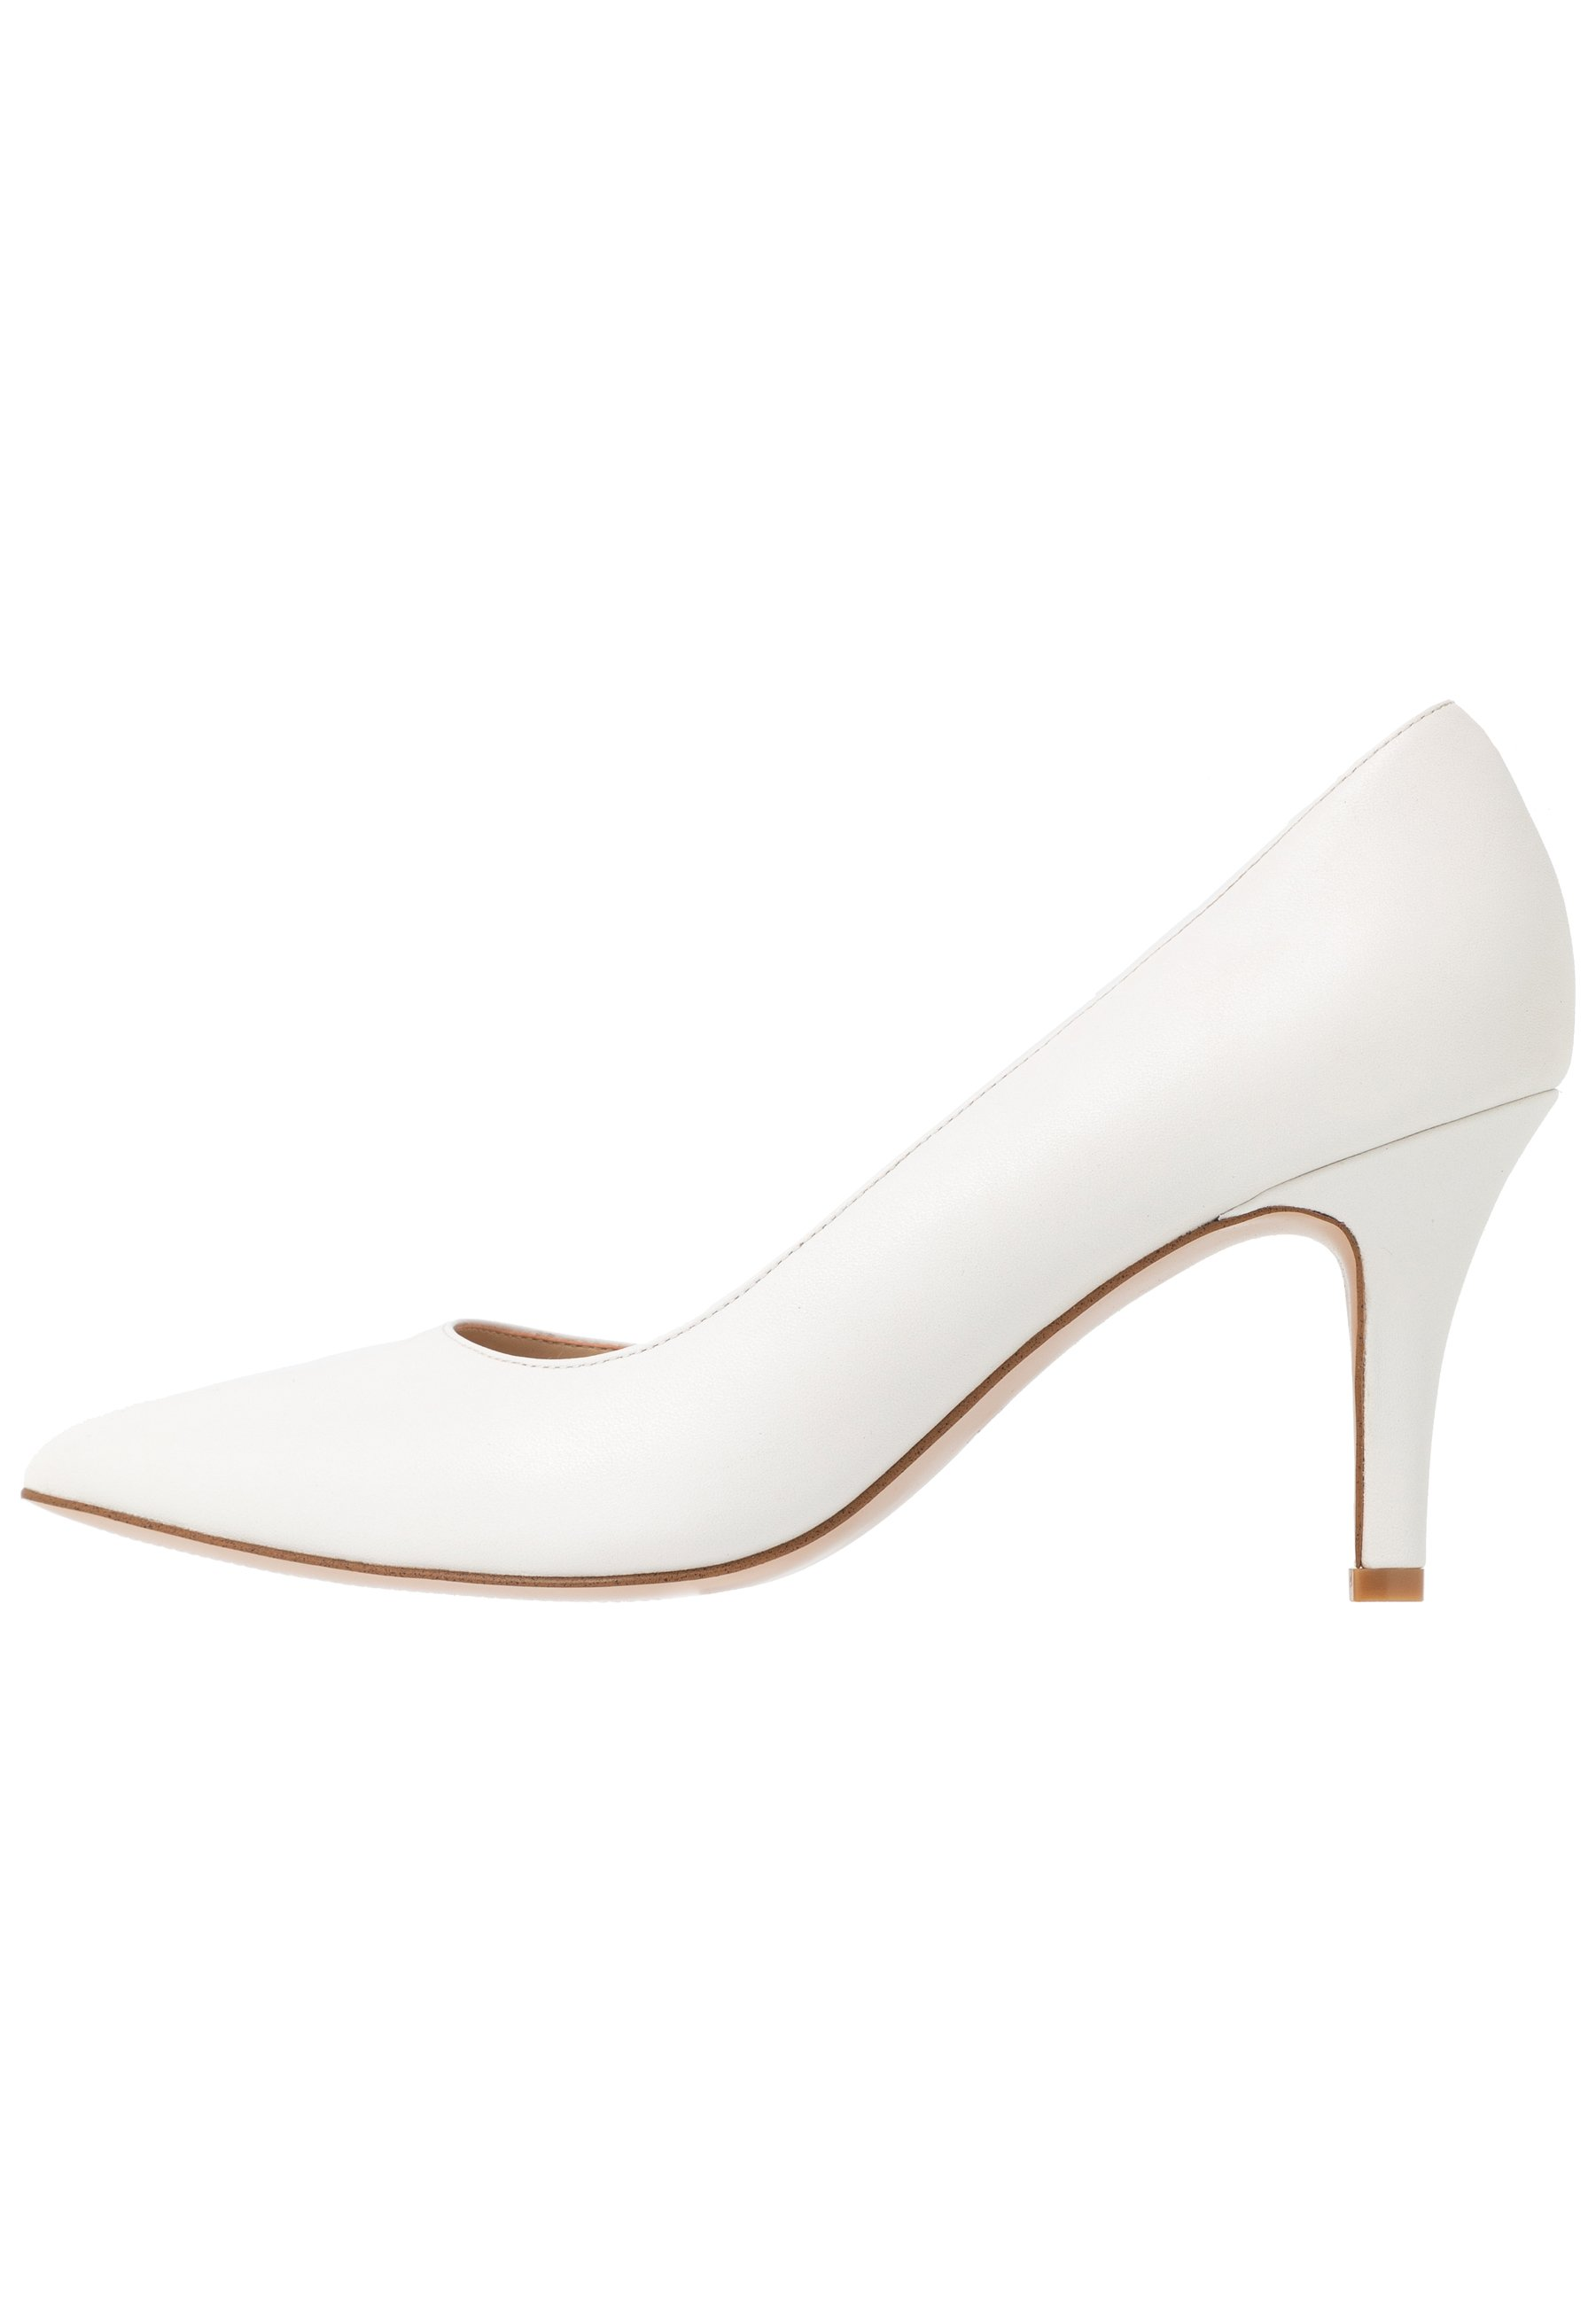 Anna Field Wide Fit Leather Pumps - White